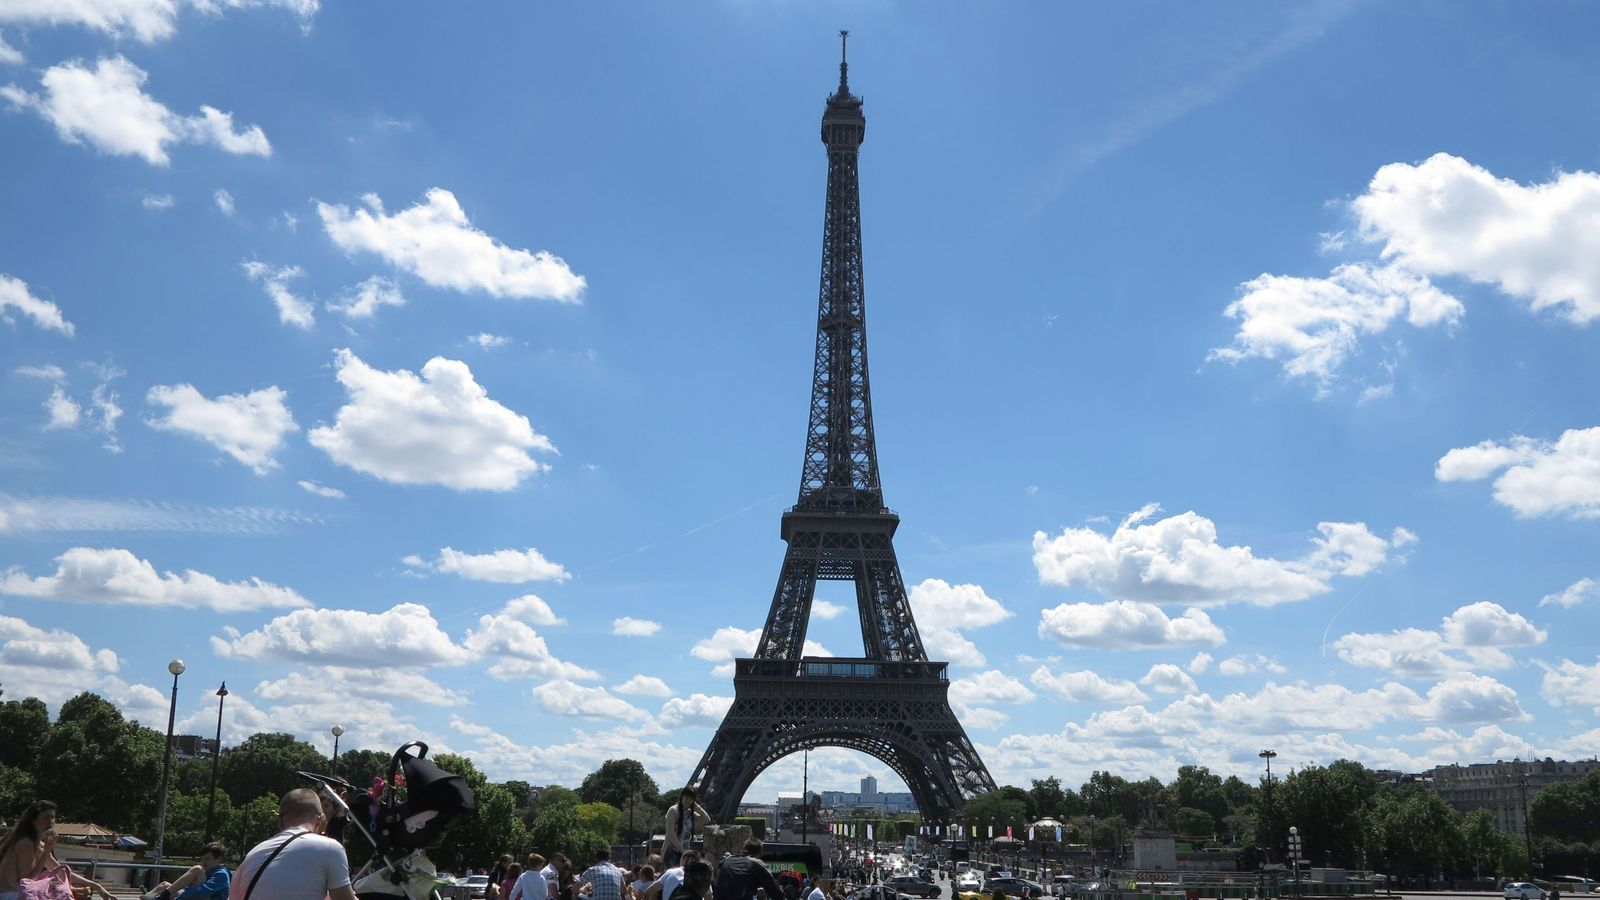 terror probe after man with knife u0027targets soldier u0027 at eiffel tower